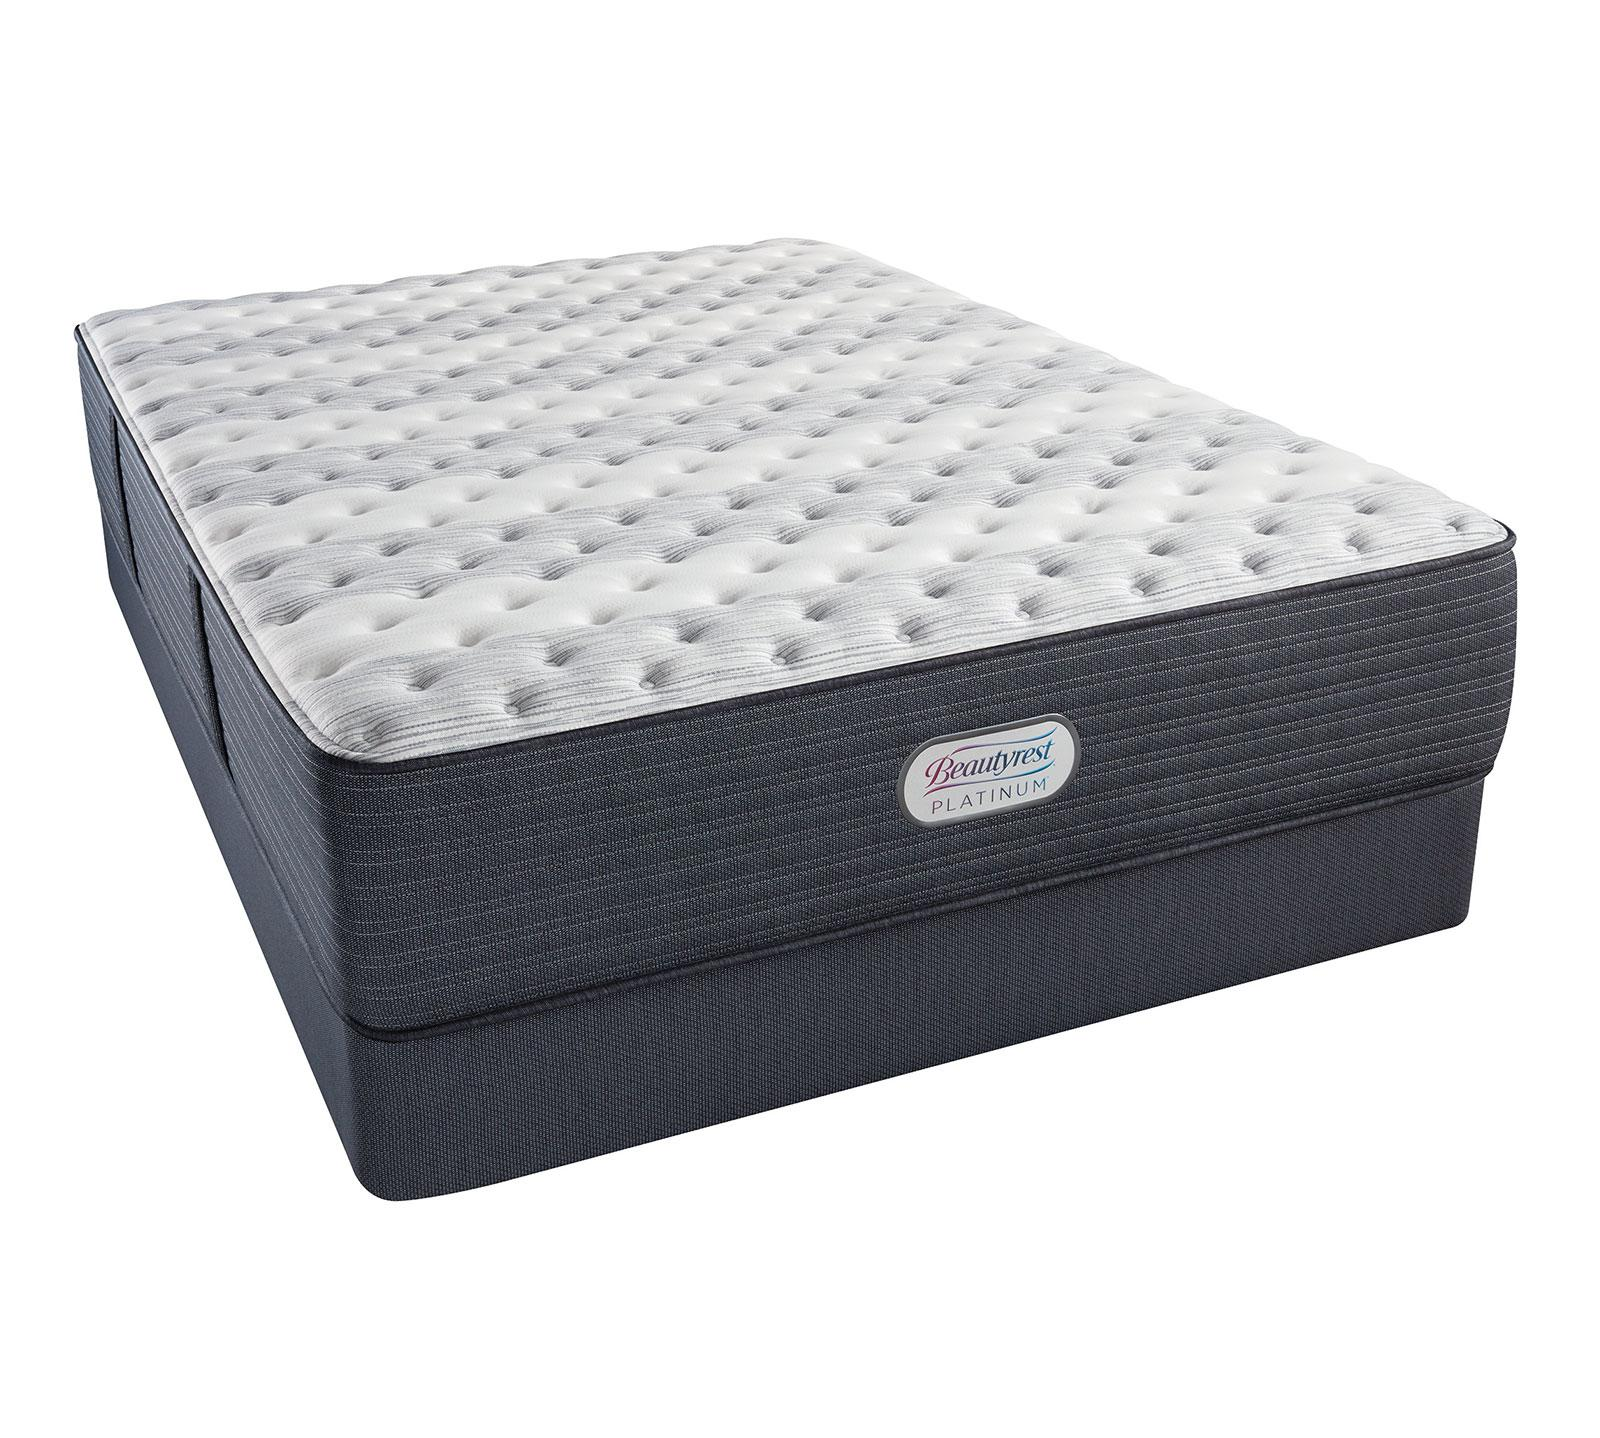 Extra Firm Mattress Topper Platinum Holloway 13 5